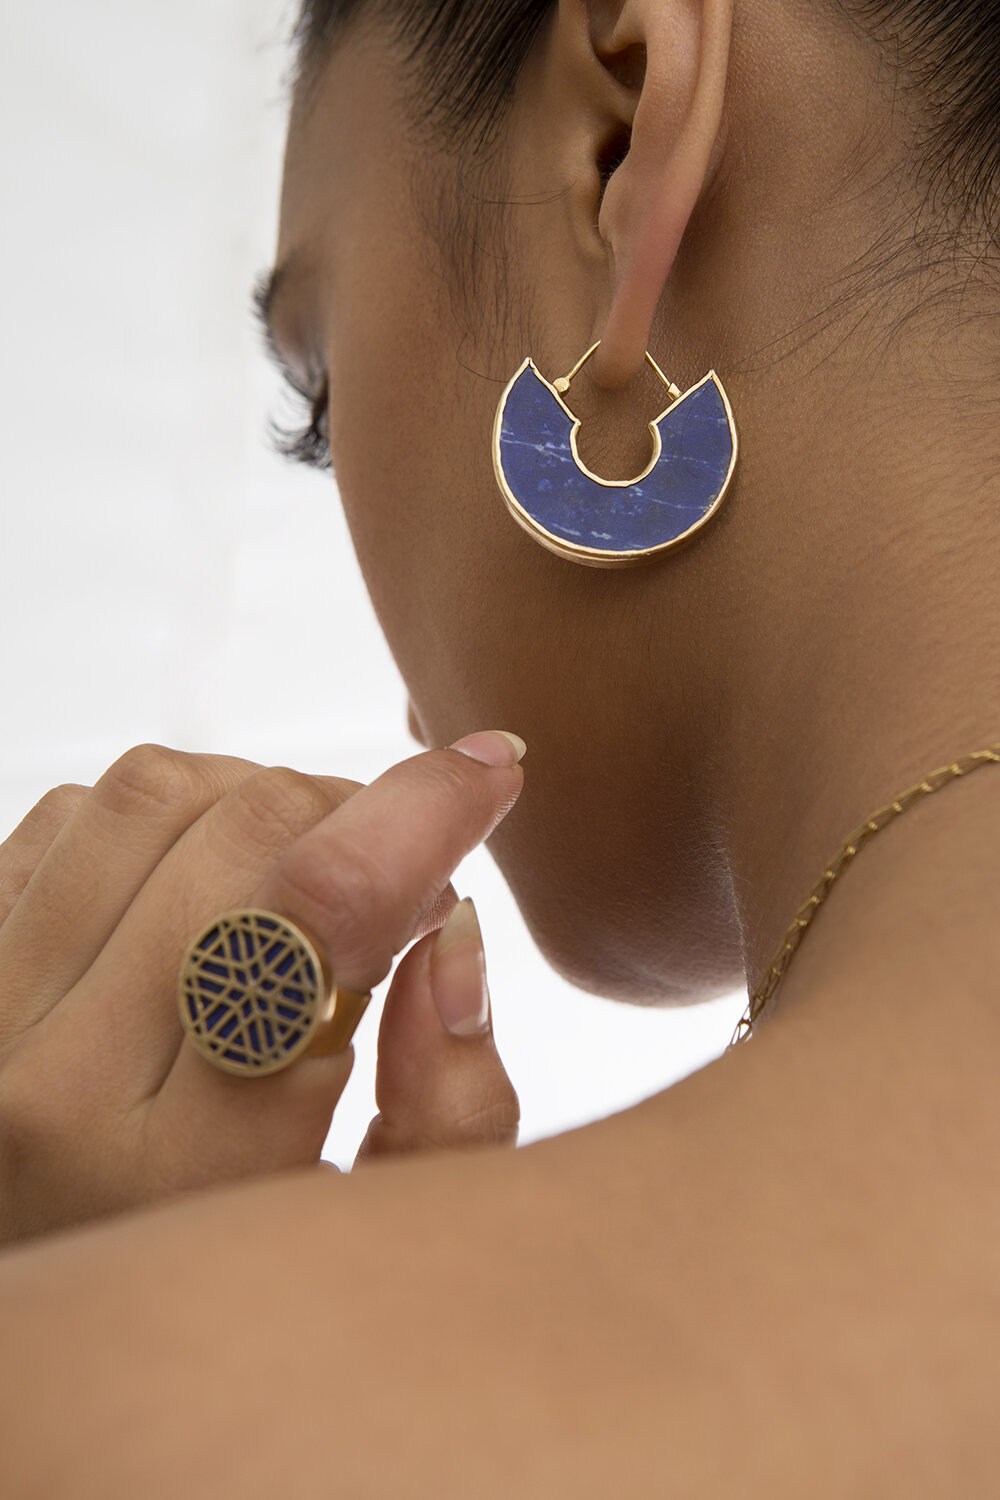 Jali Signet Ring in Lapis Lazuli  and  Jali Earrings .